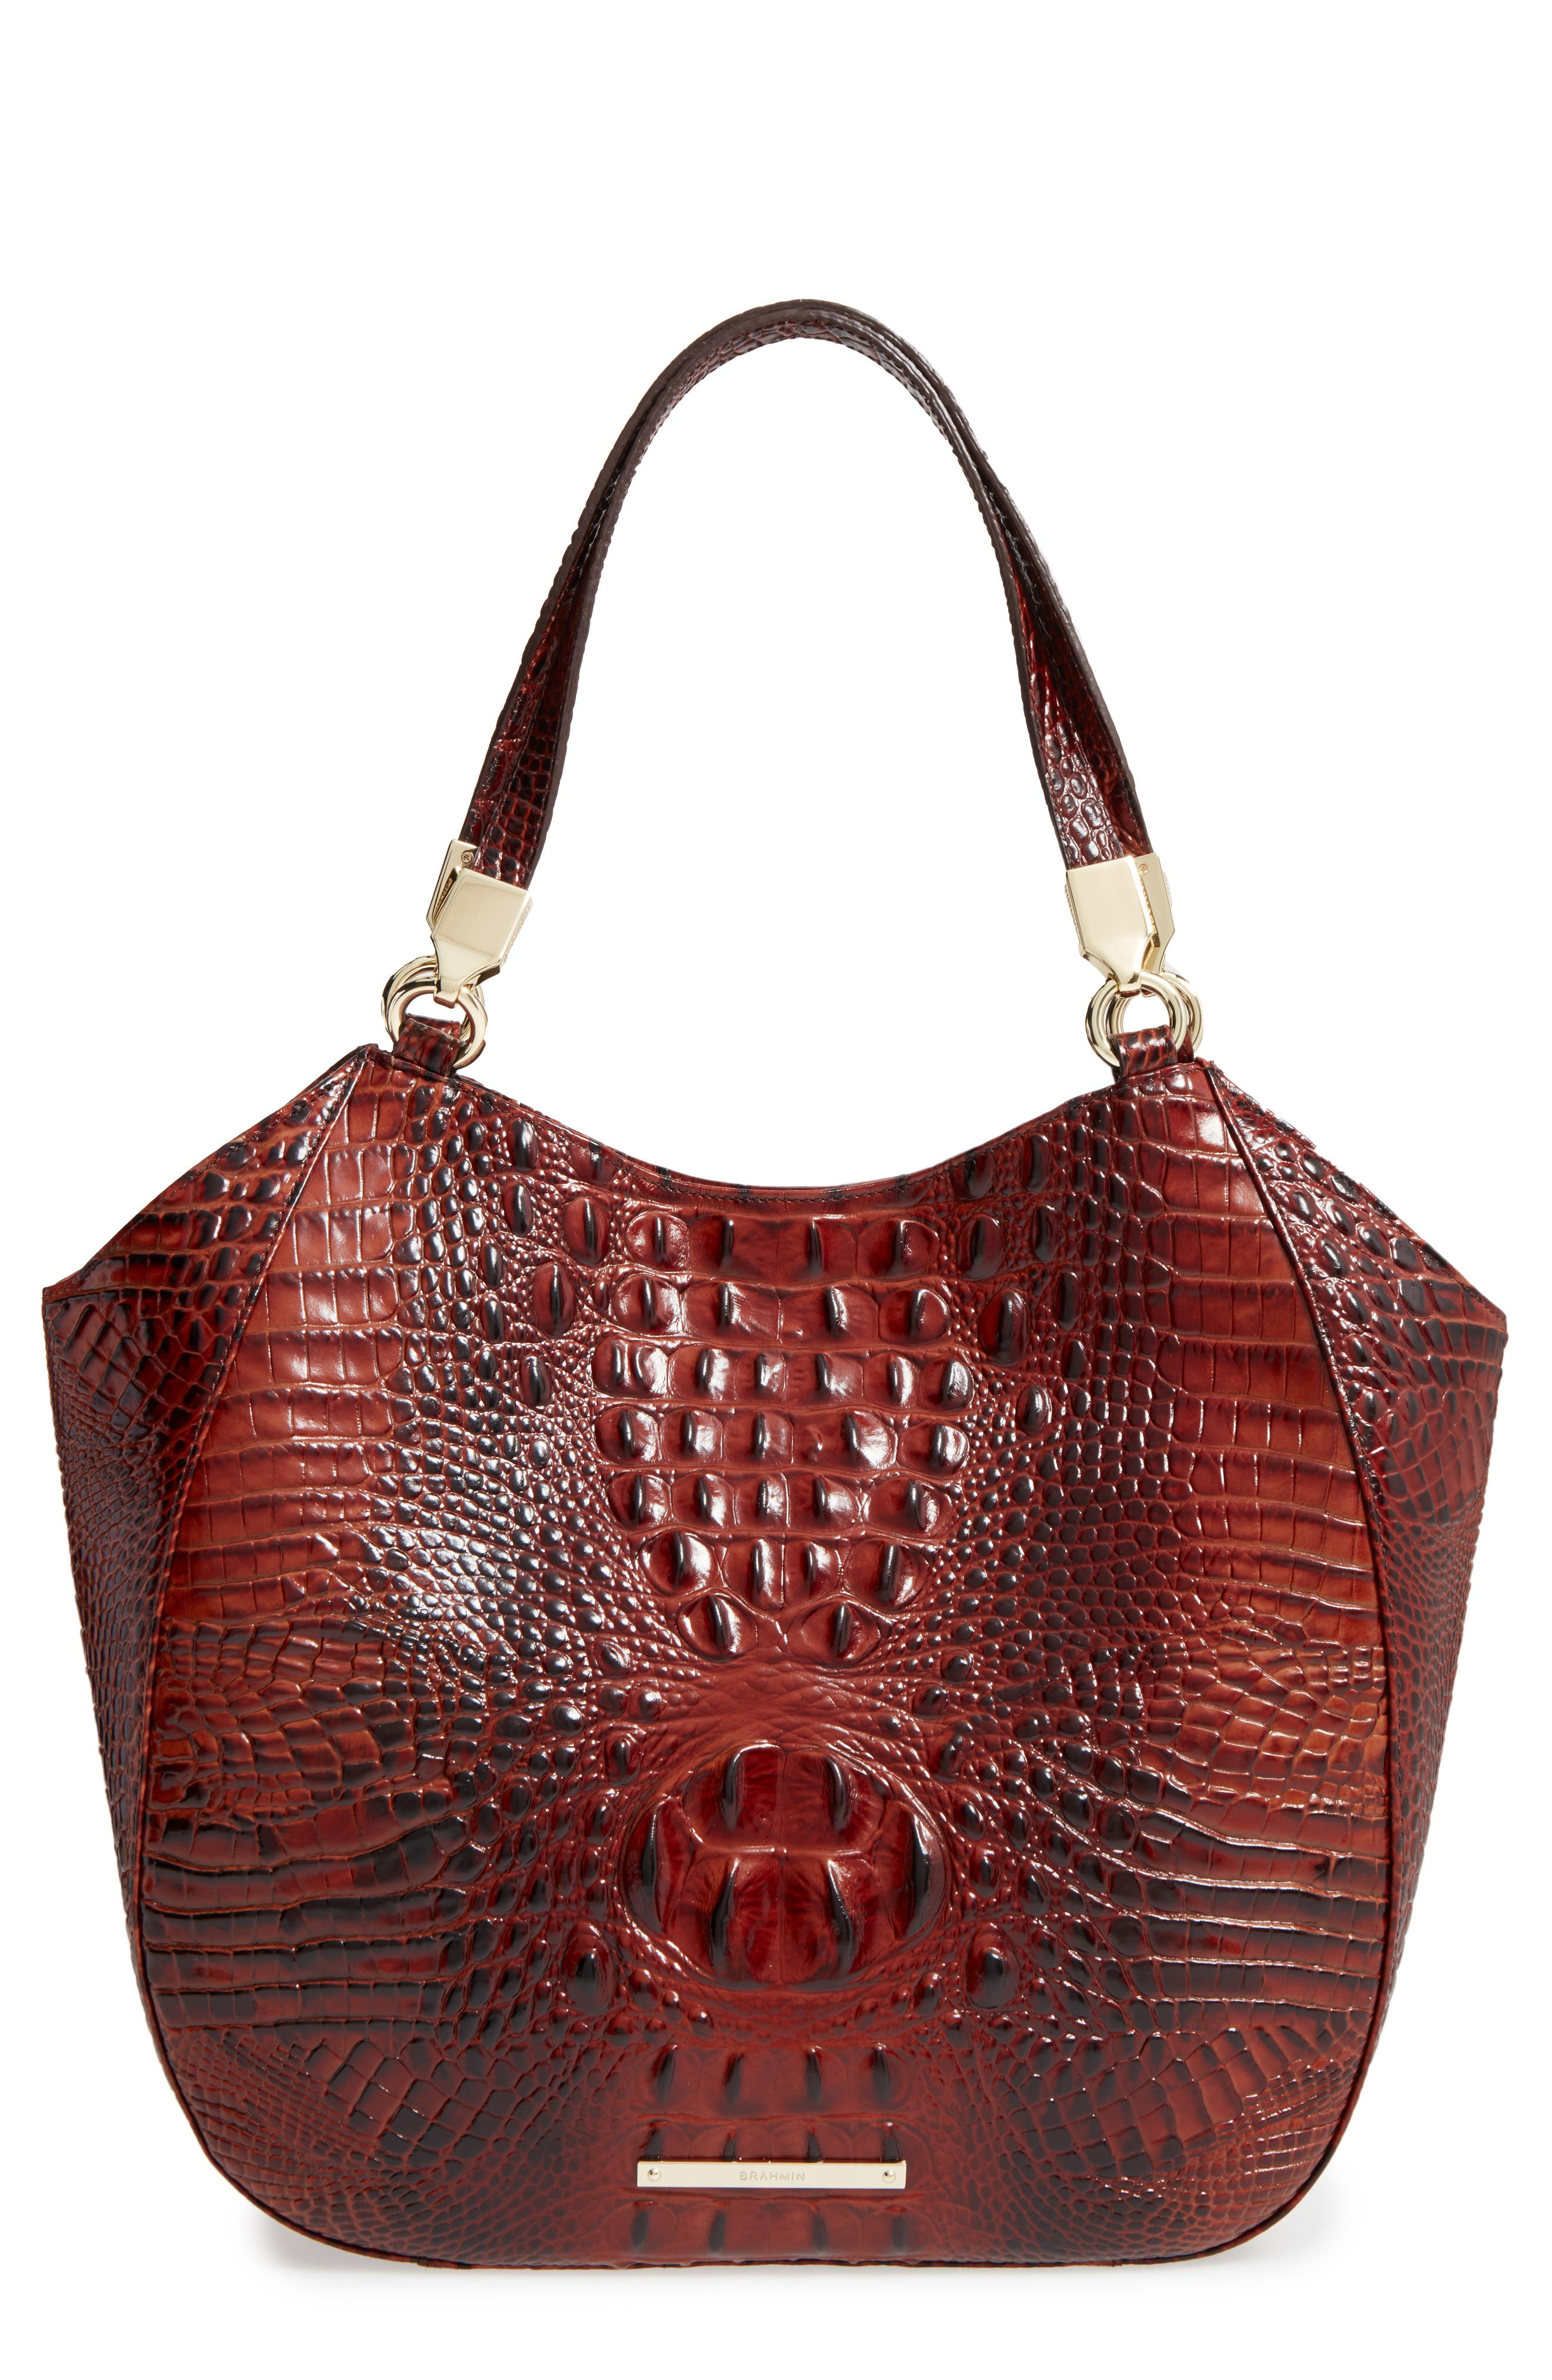 Brahmin Melbourne Marianna Leather Tote